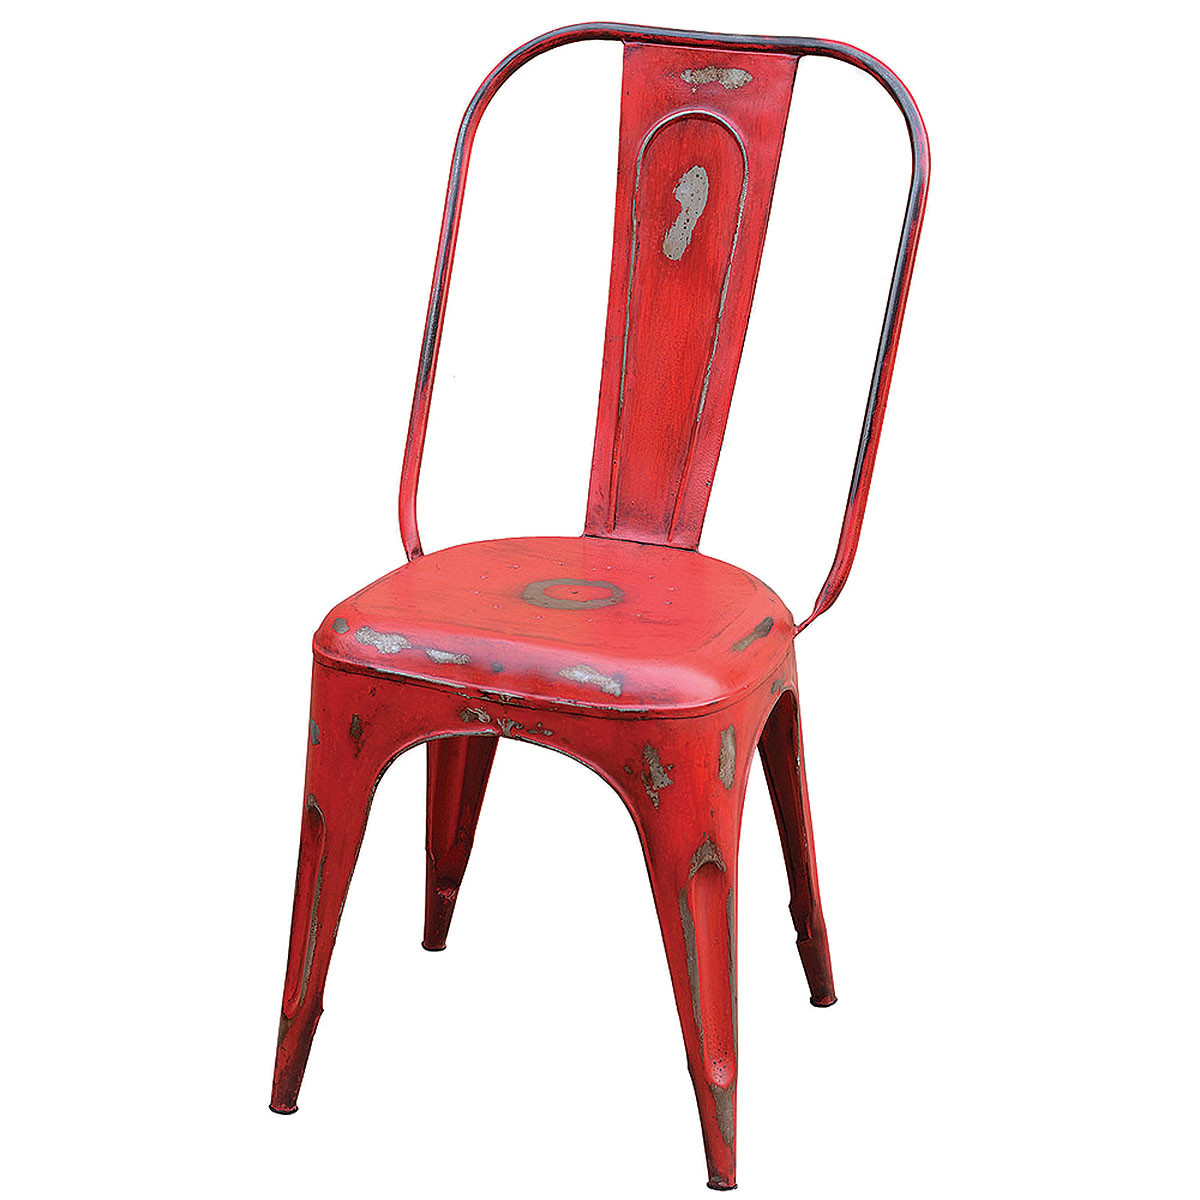 image 1 image 2 - Bistro Chairs